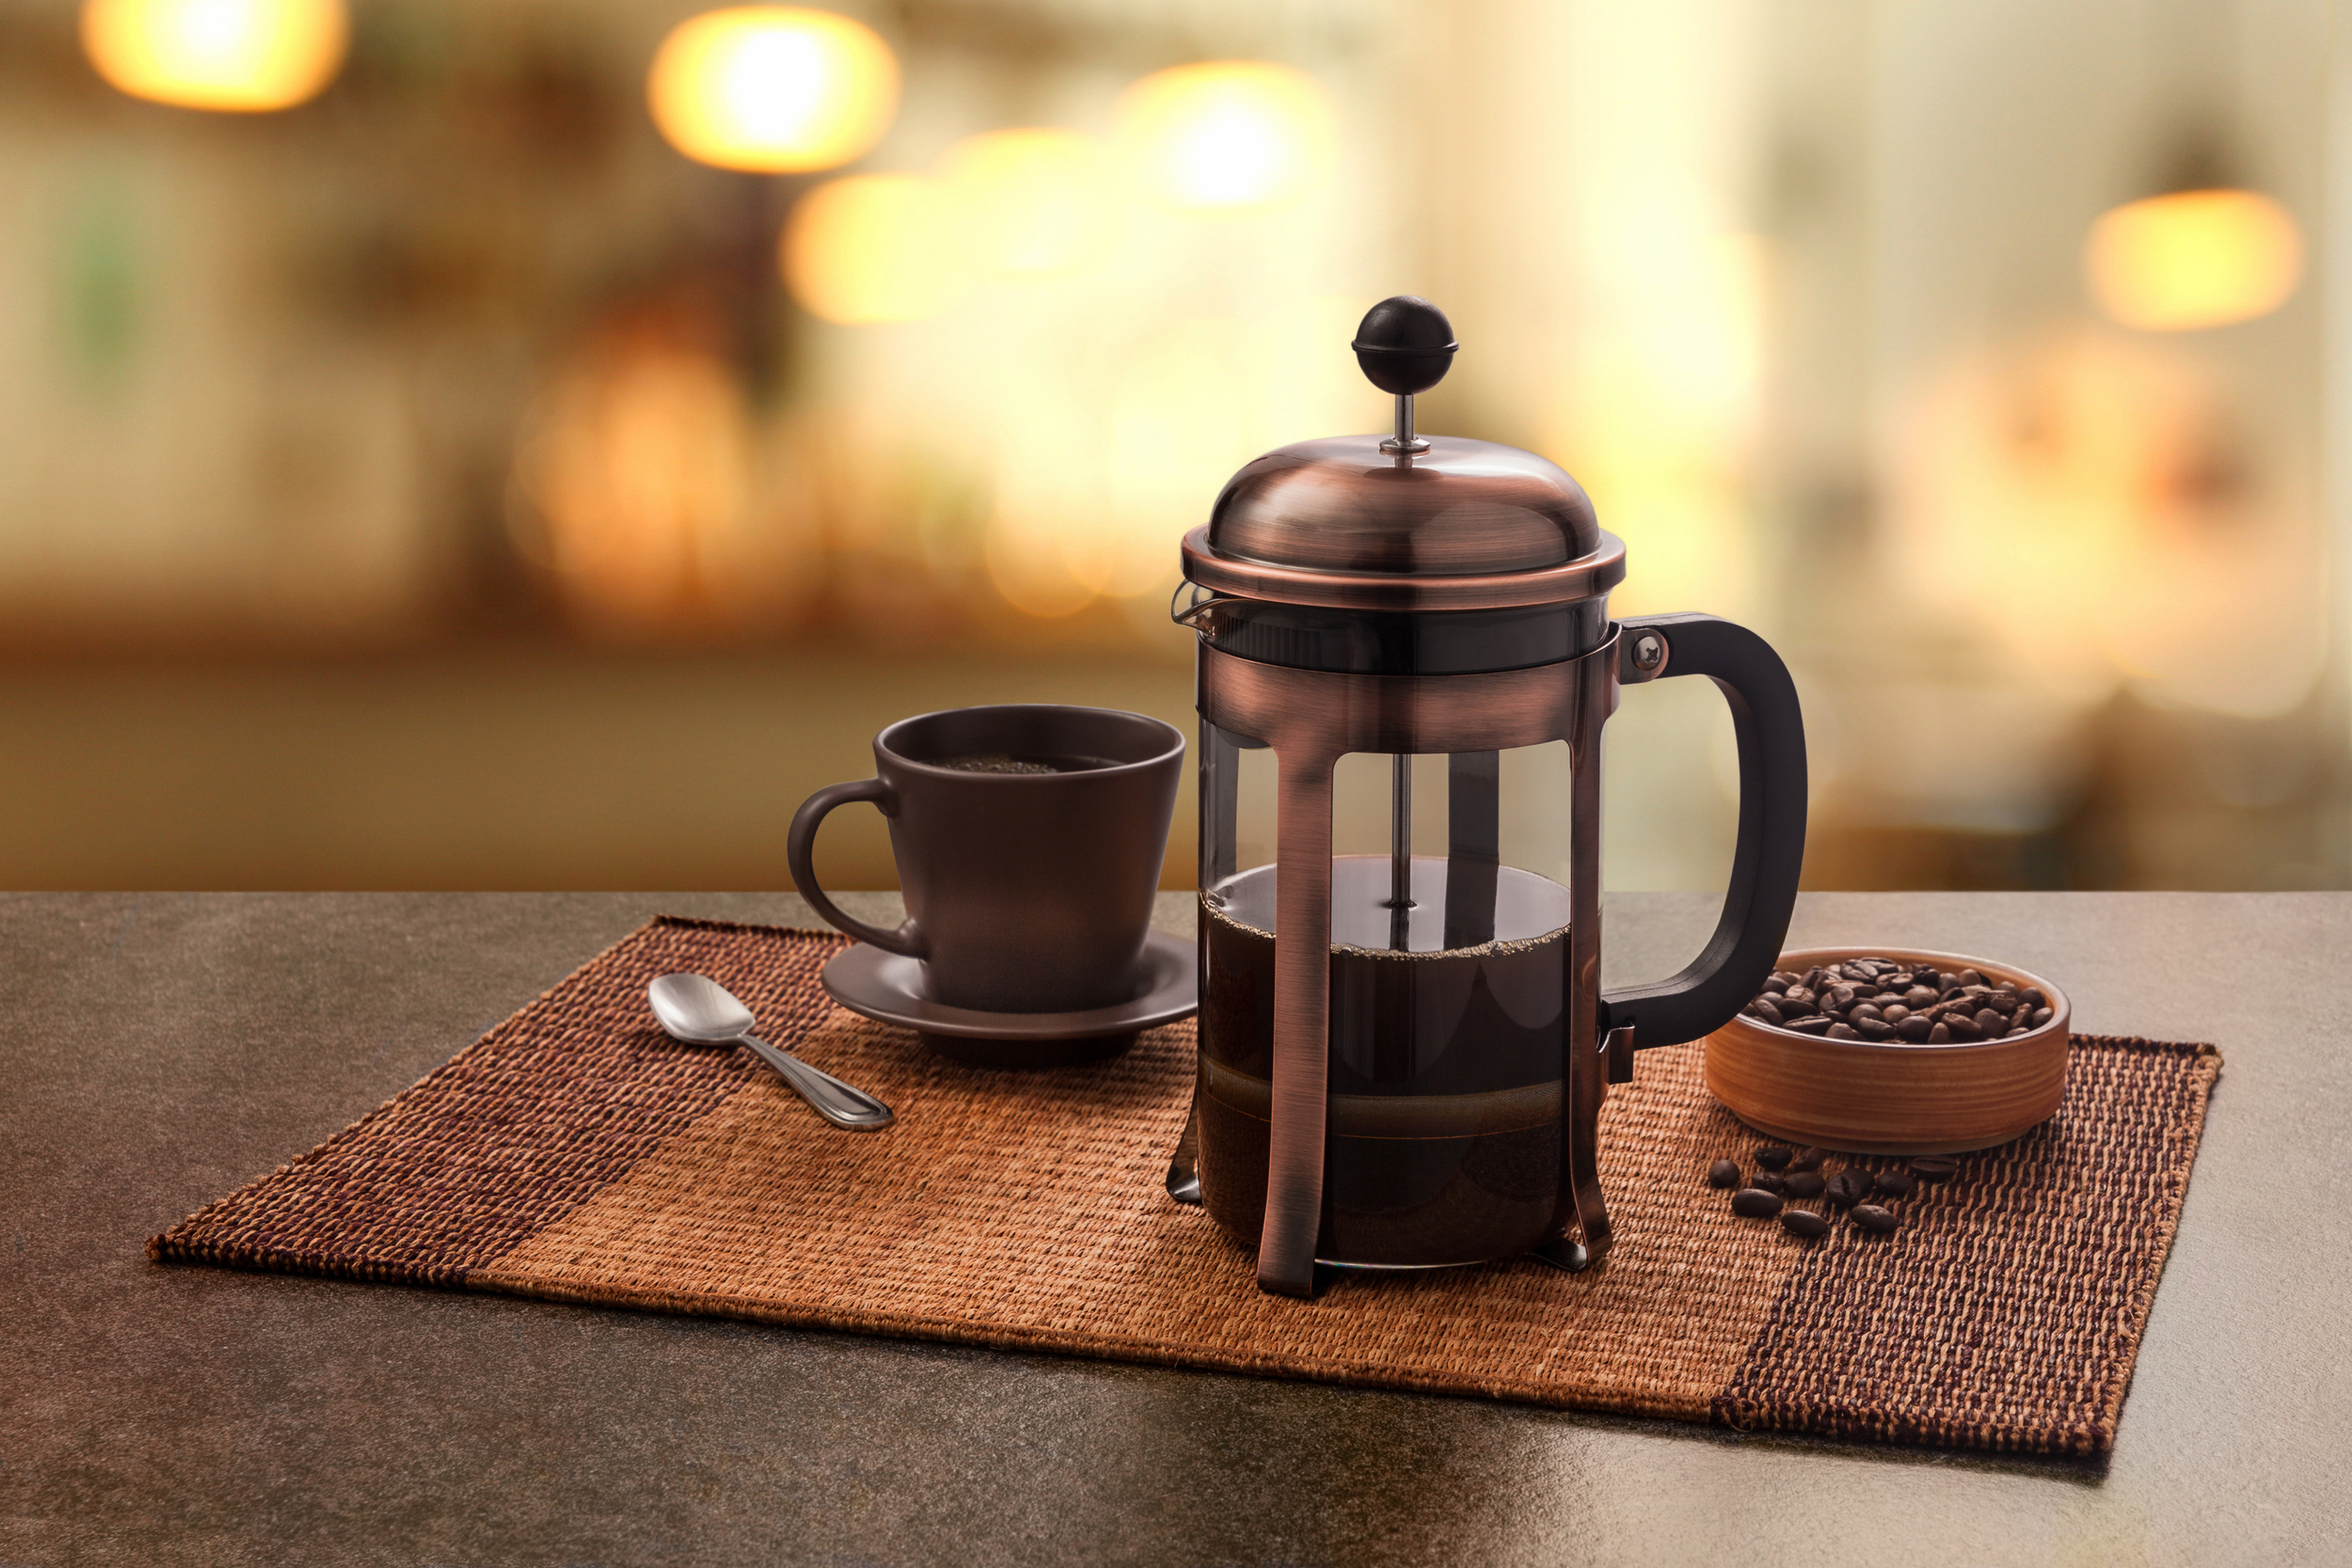 Coffee press is a classic way to bring out the flavor of your coffee.